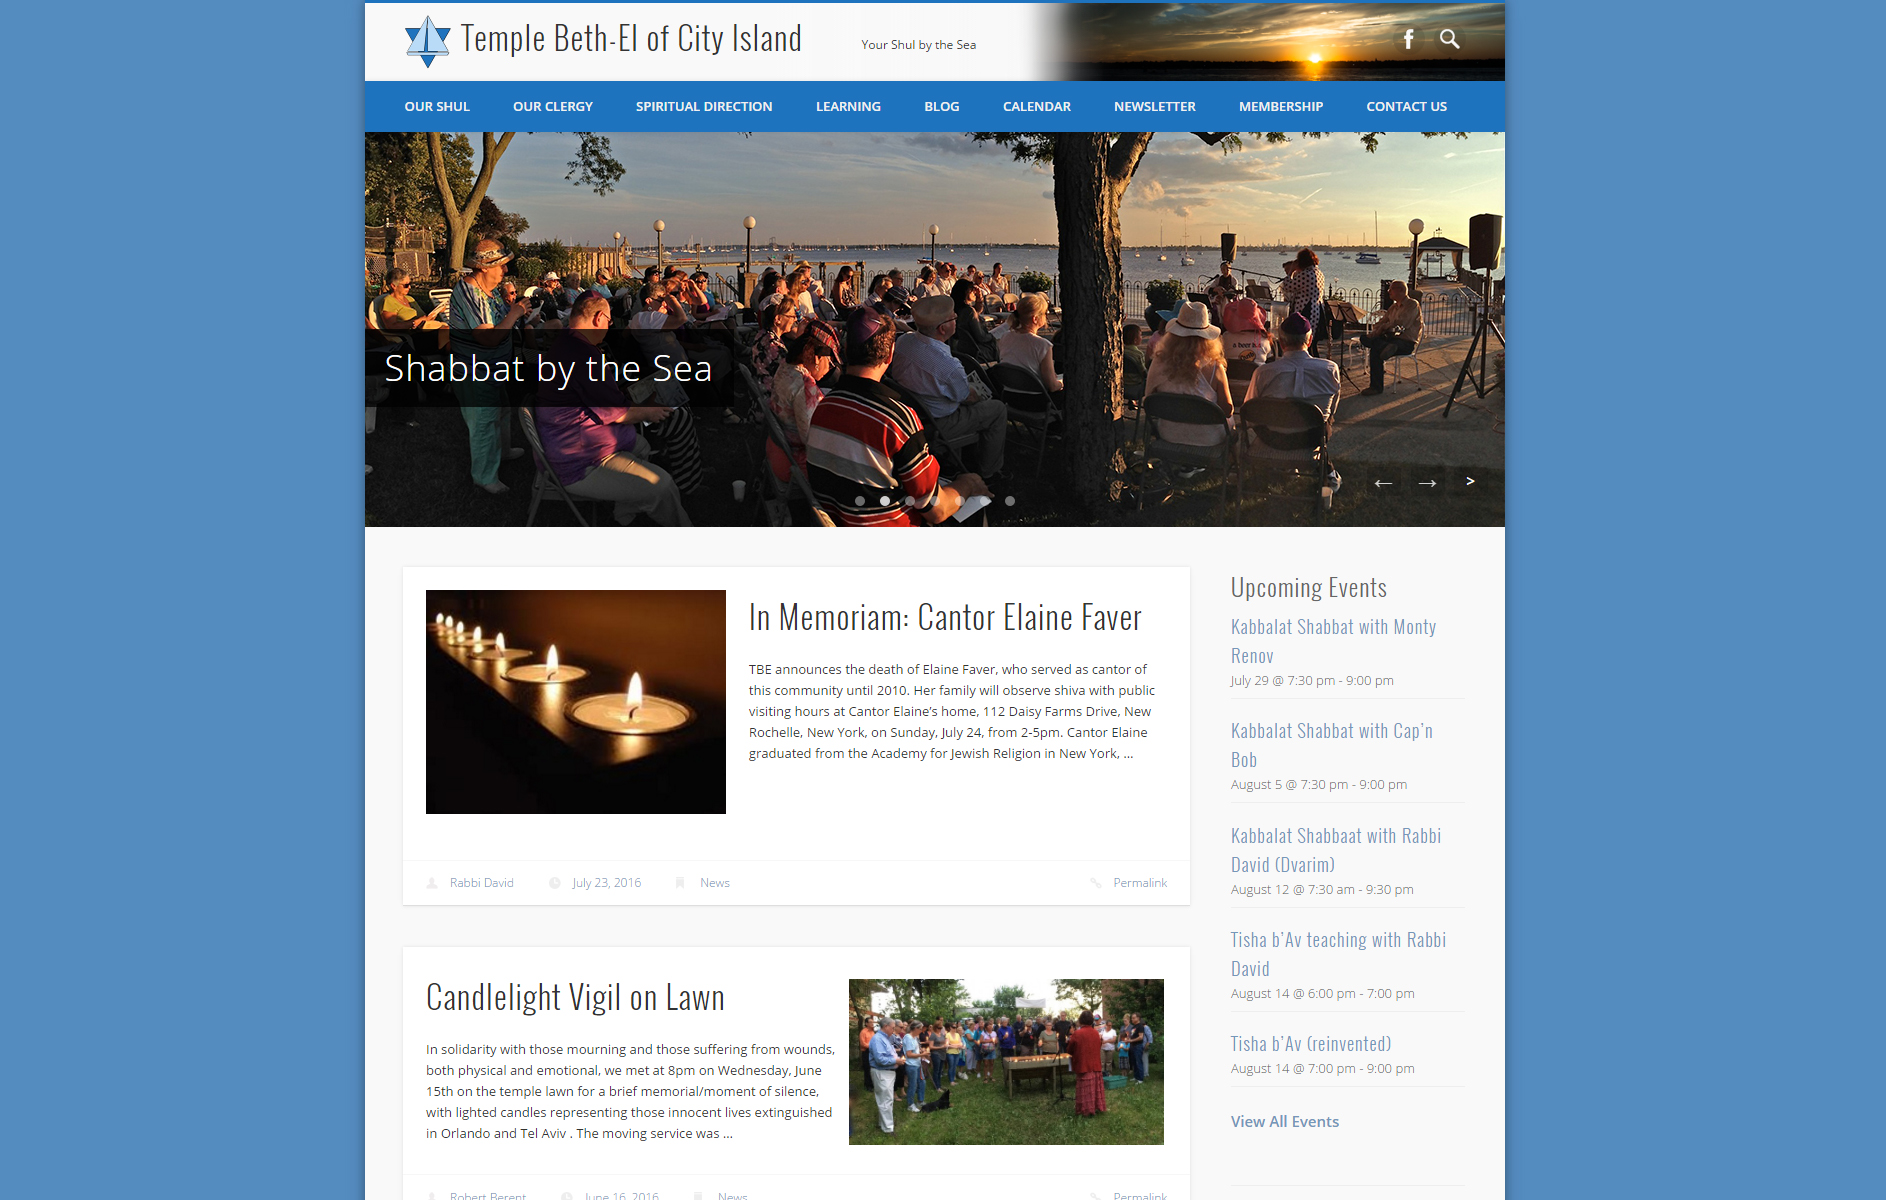 Temple Beth-El of City Island Web Design